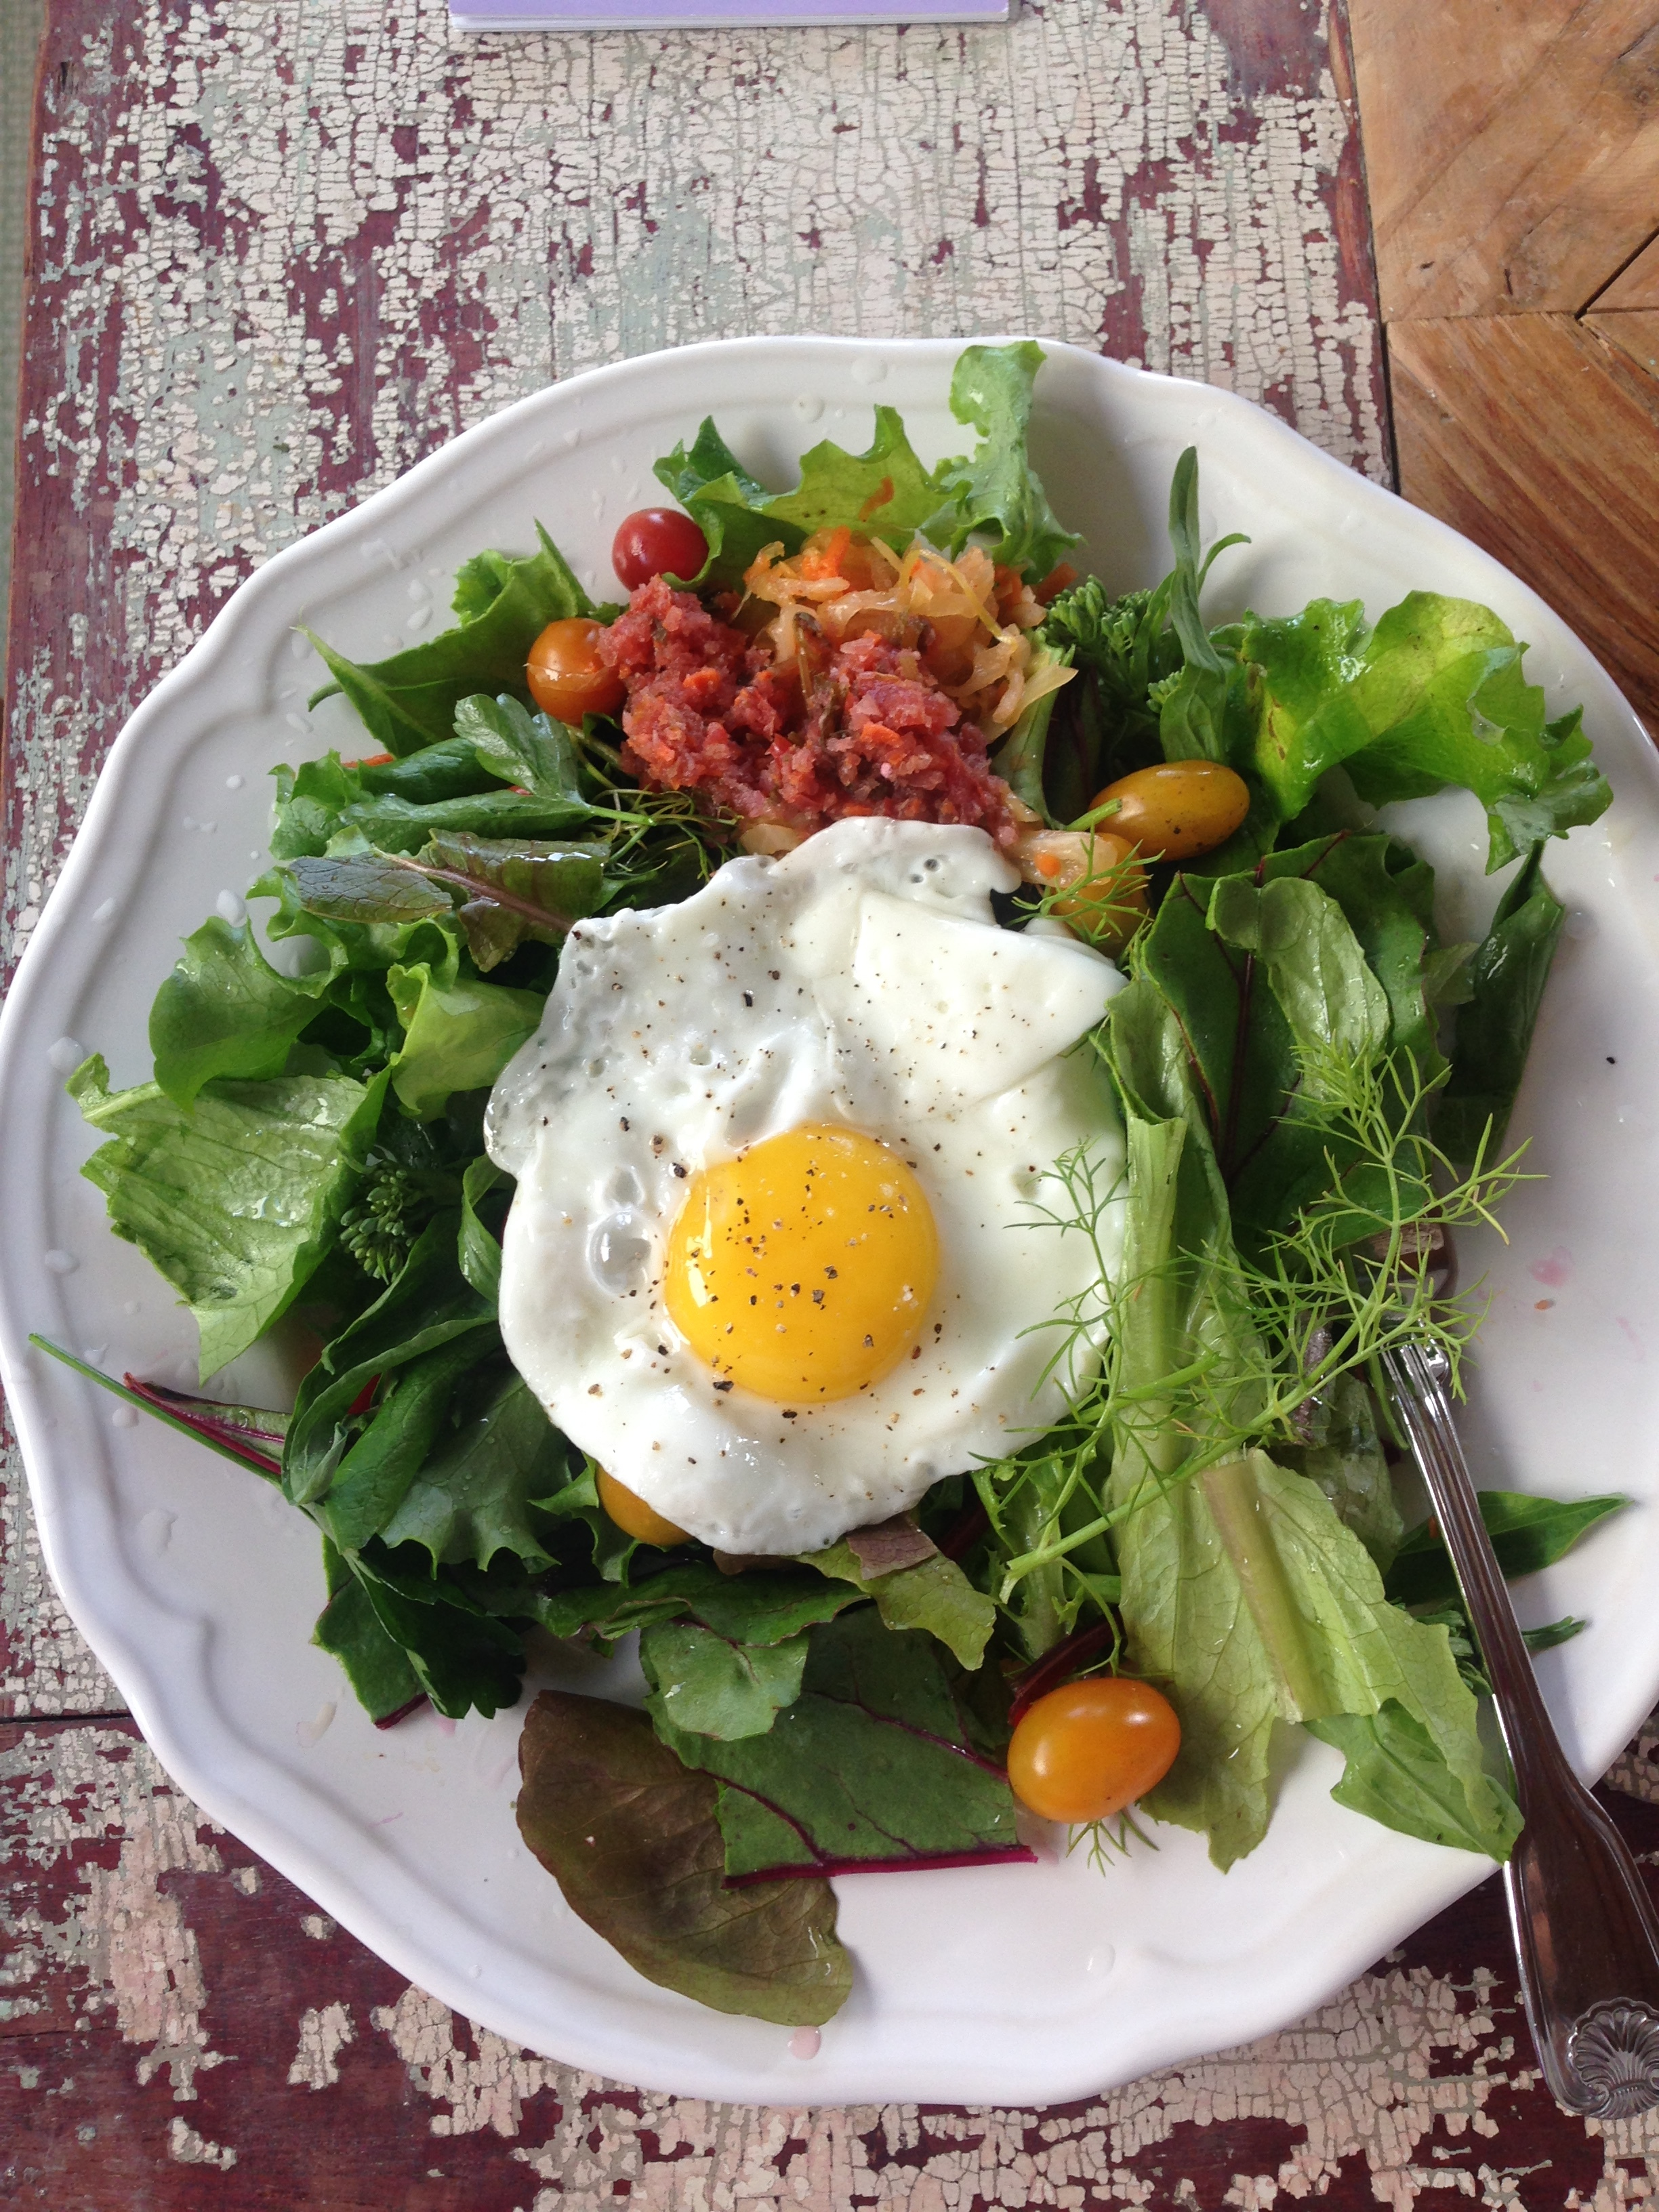 Ok, that's about $1.50 for a killer pastured egg on a killer backyard salad - 5 minute breakfast, lunch or dinner!